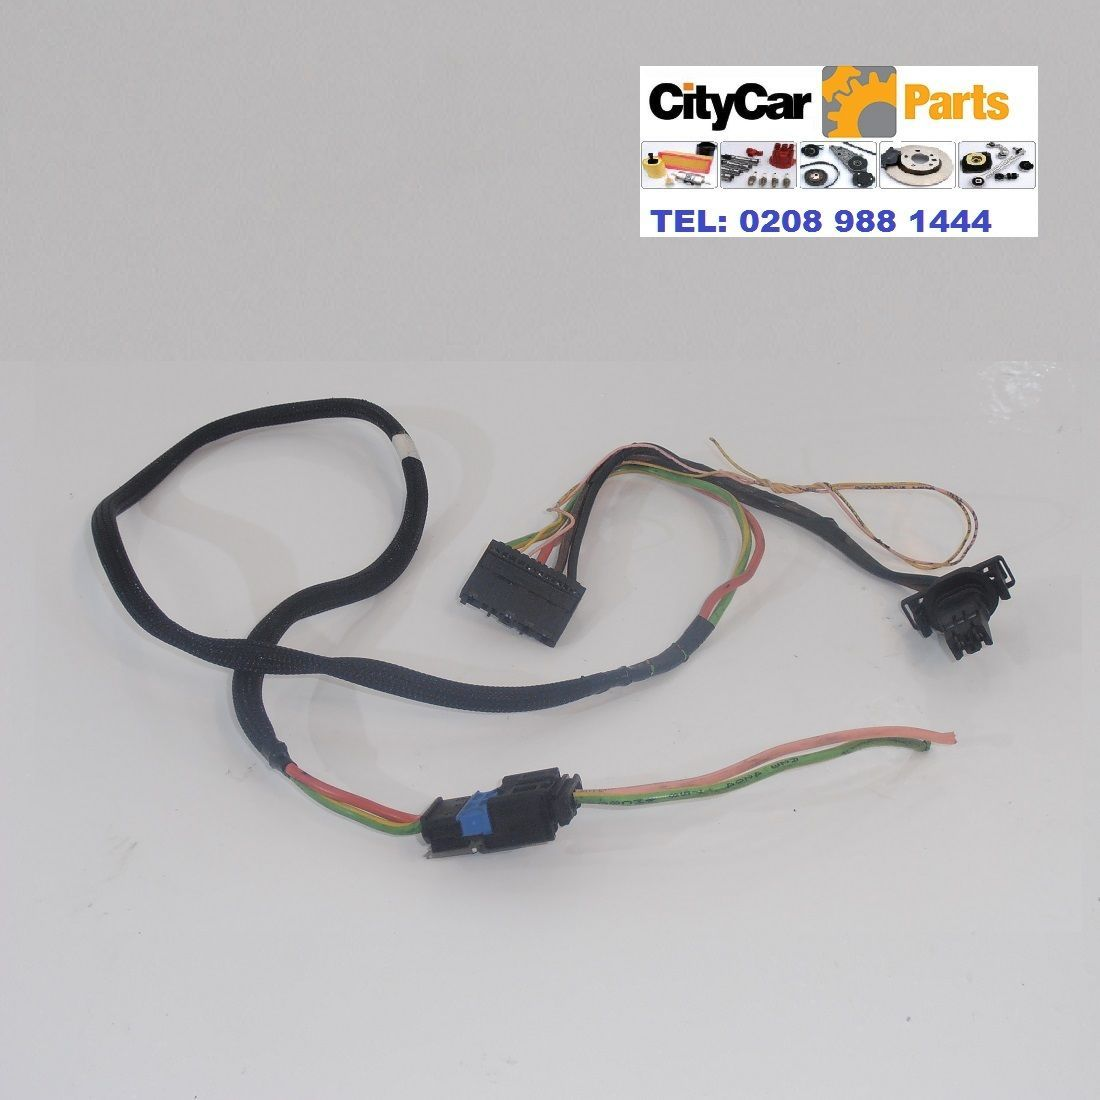 peugeot 308 model from 2007 to 13 hatchback ac heater blower wiring 308 gts peugeot 308 model from 2007 to 13 hatchback ac heater blower wiring loom & plug